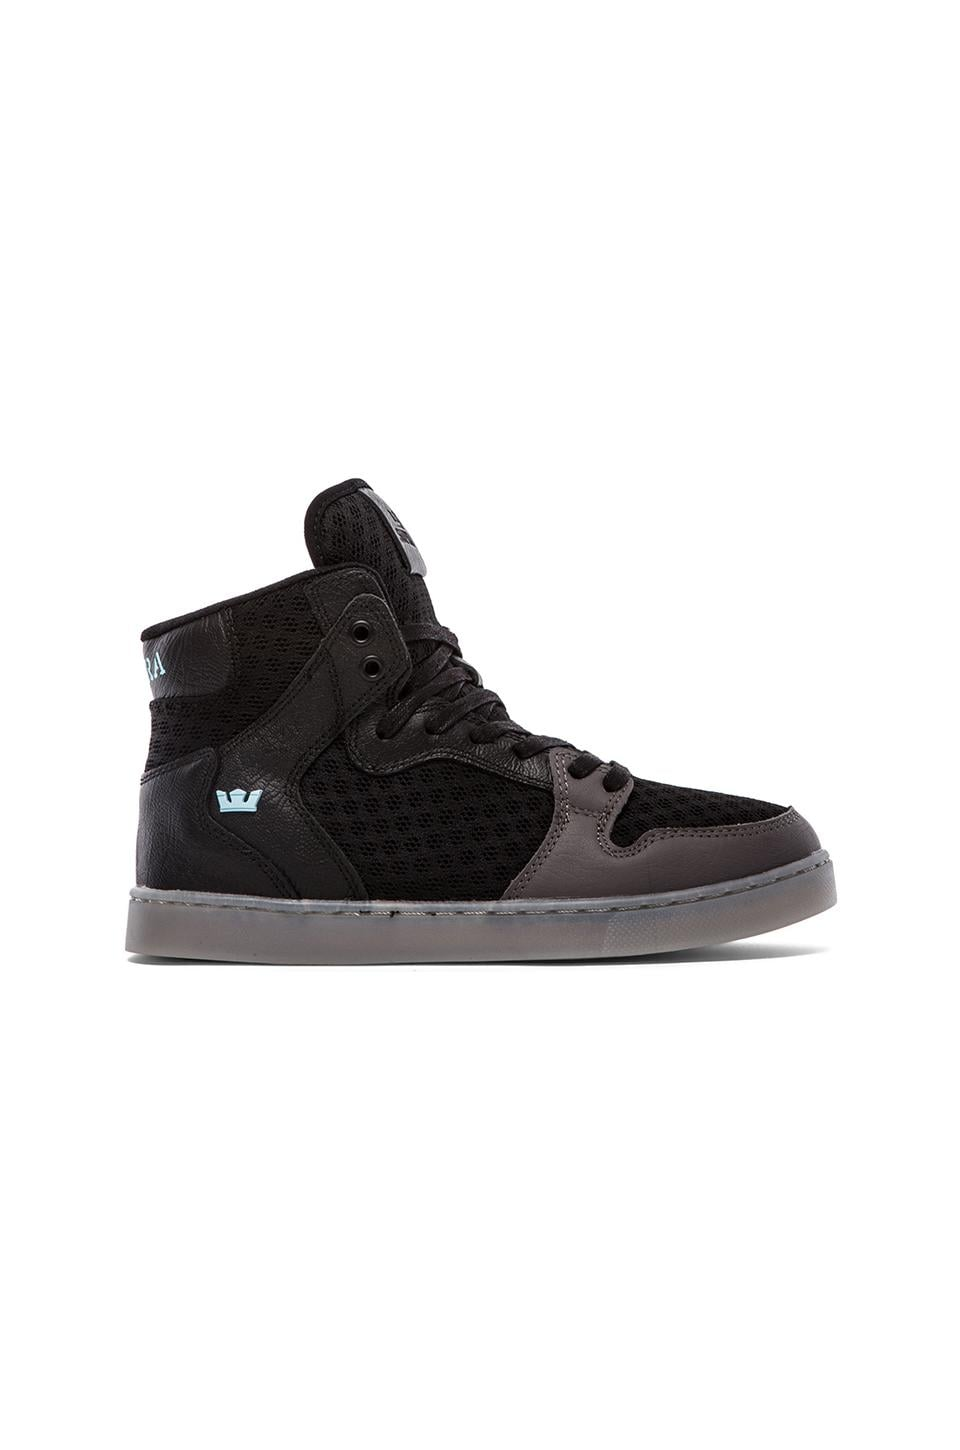 Supra Vaider LX in Black & Grey